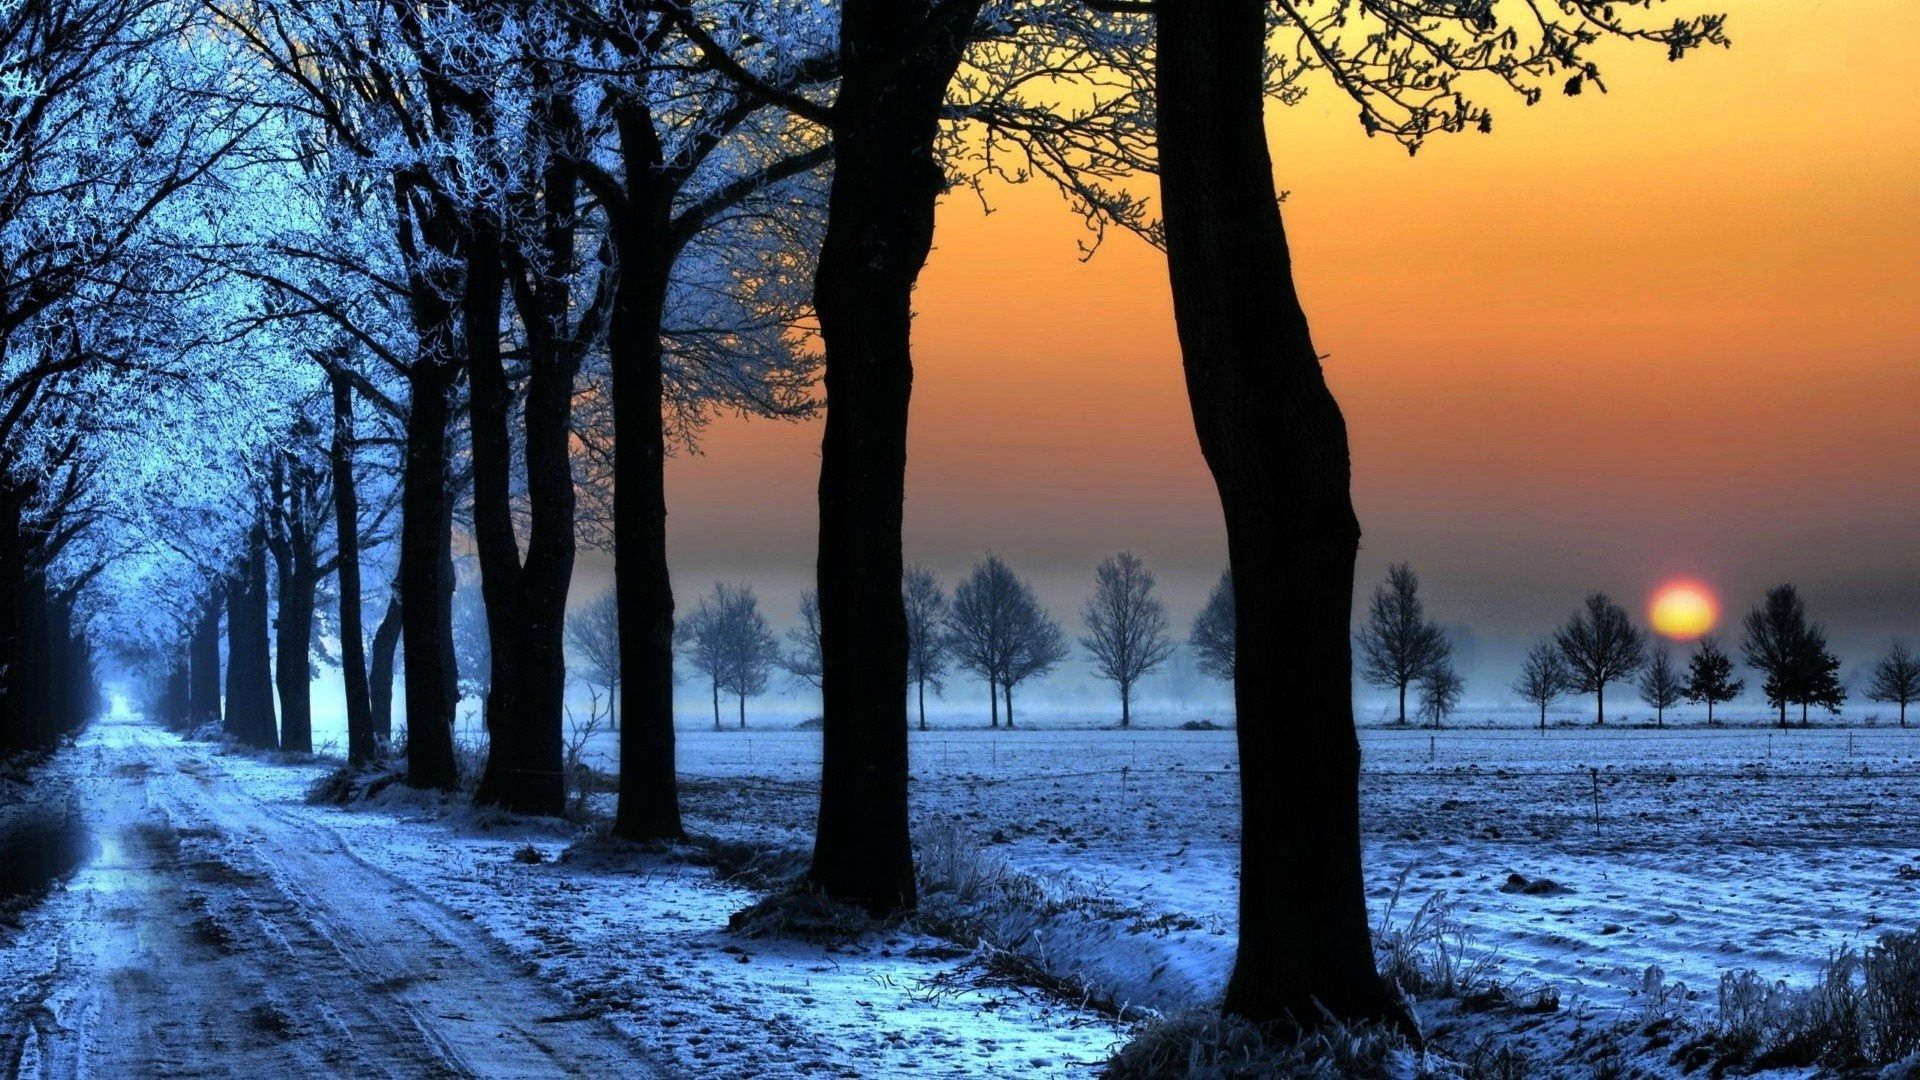 Winter Sunset Hd Wallpapers Sunset Photography Nature Sunset Wallpaper Sunset Nature